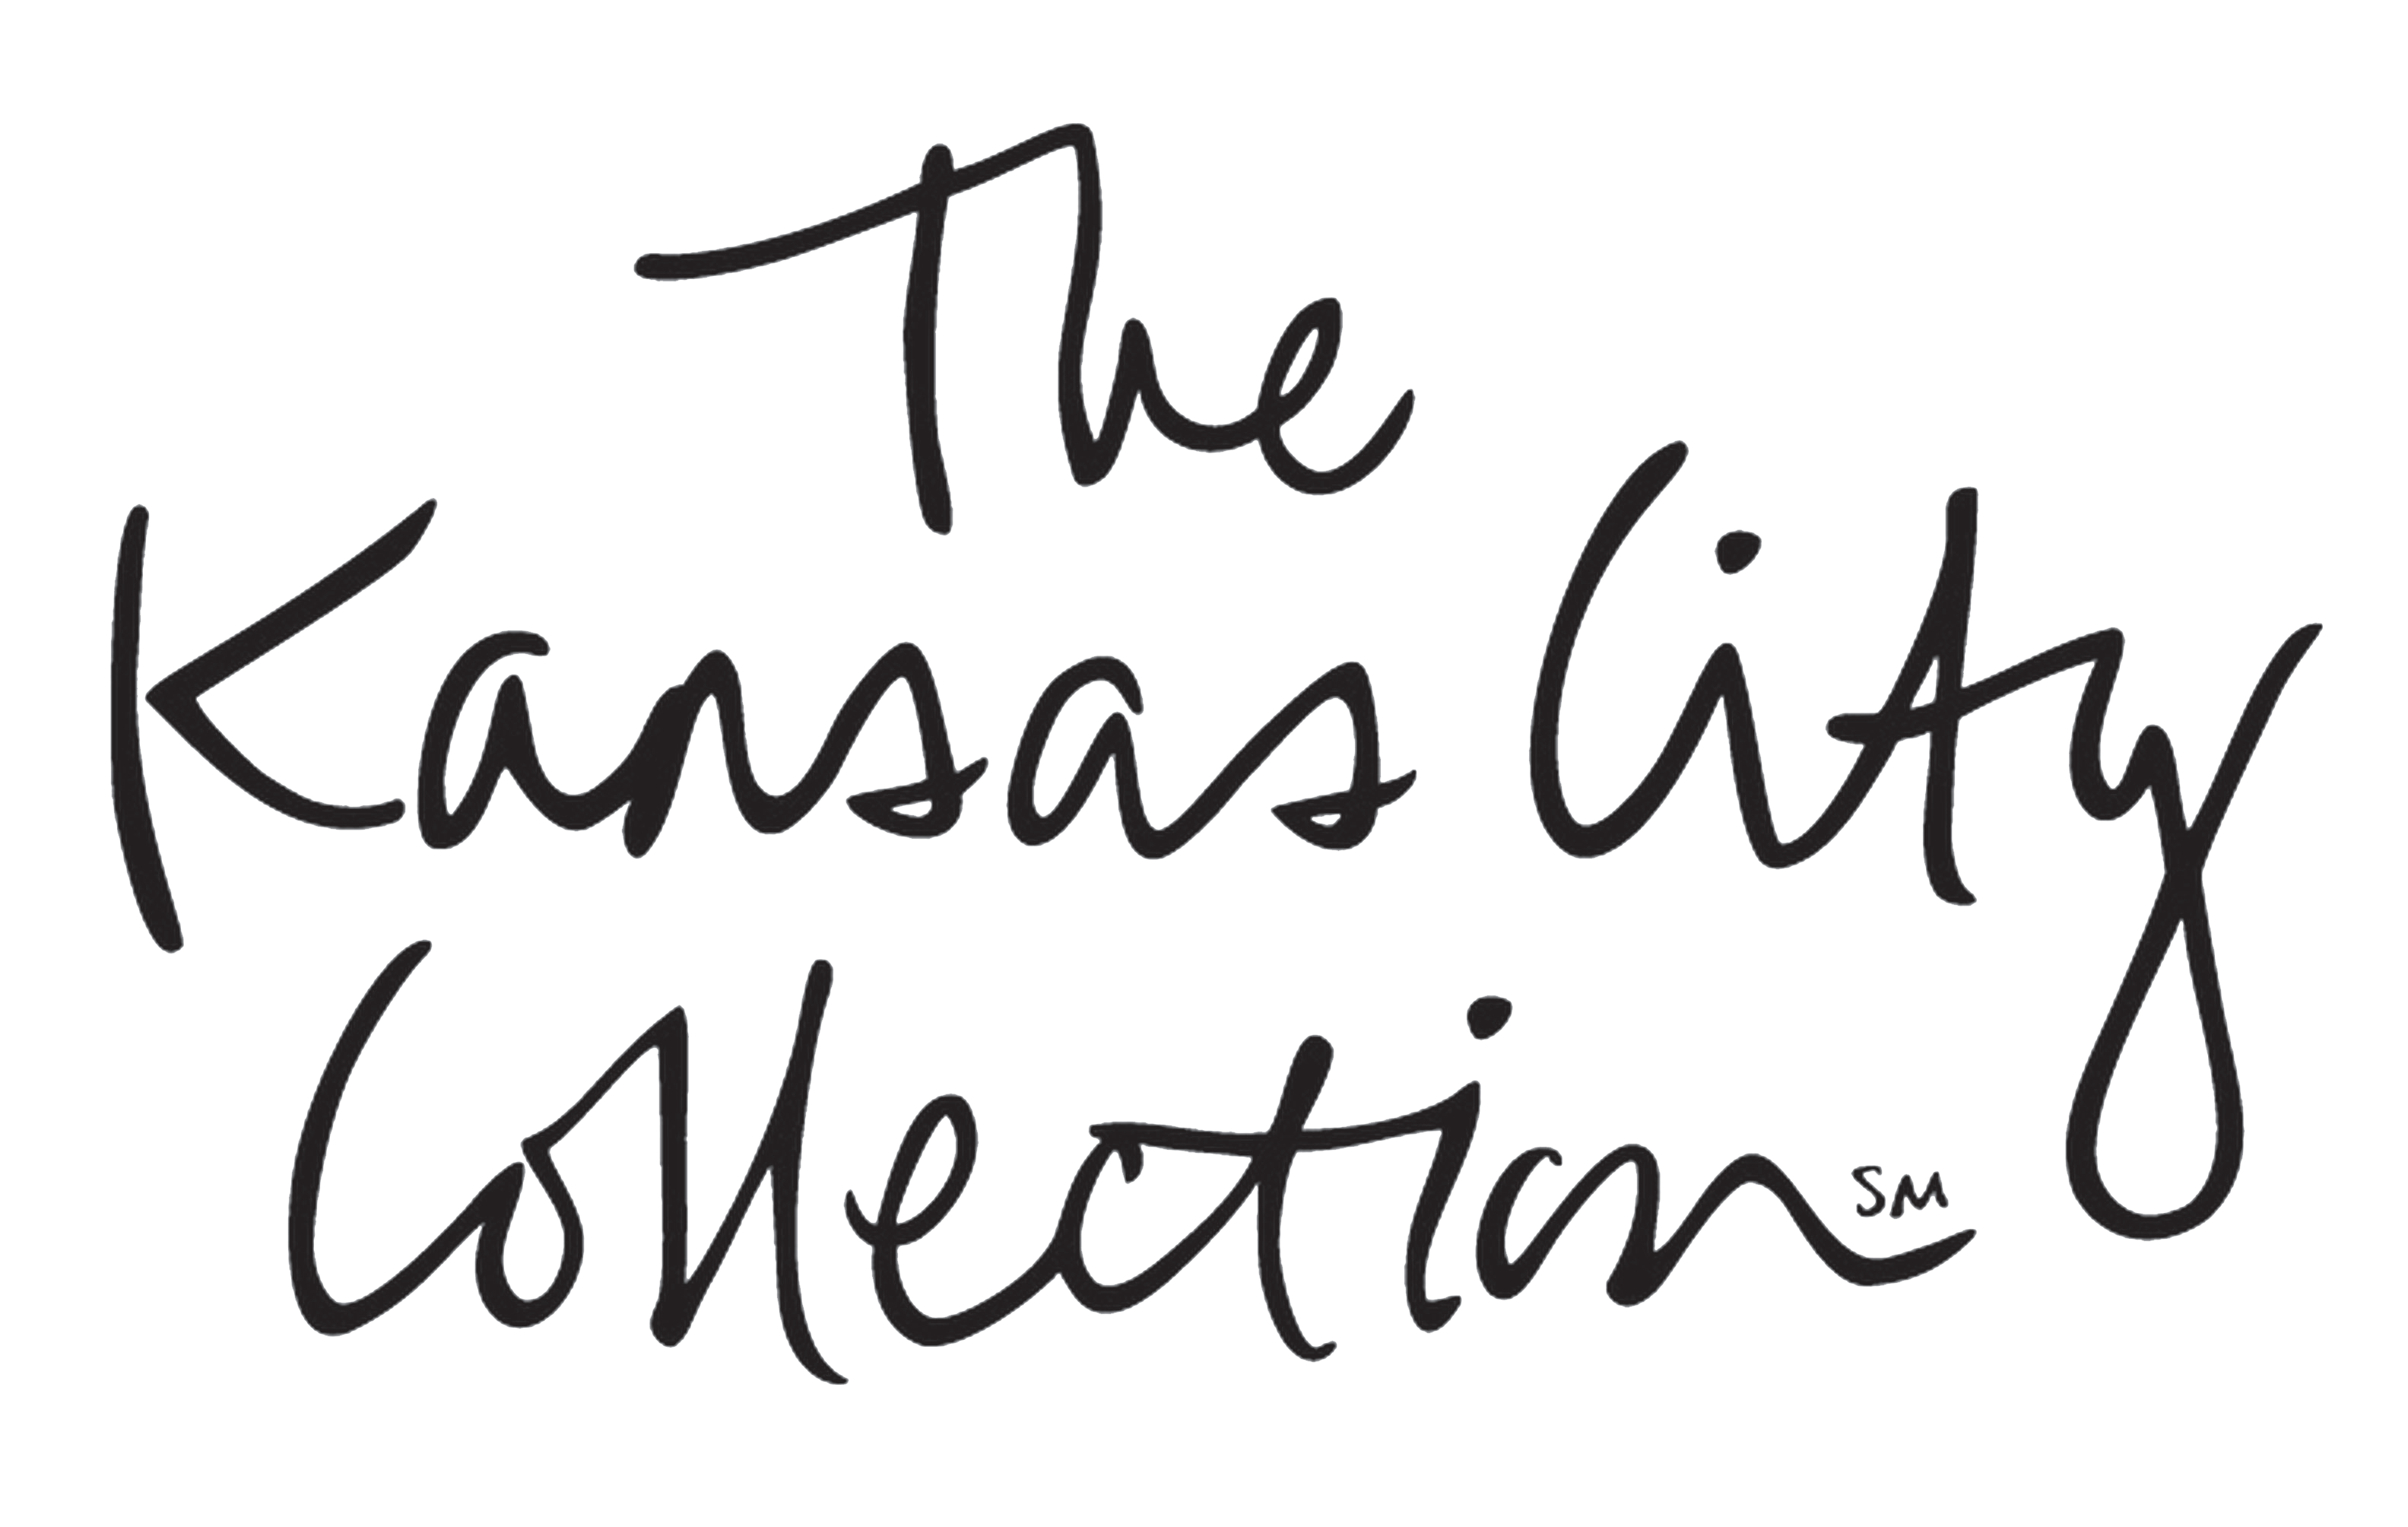 The Kansas City Collection